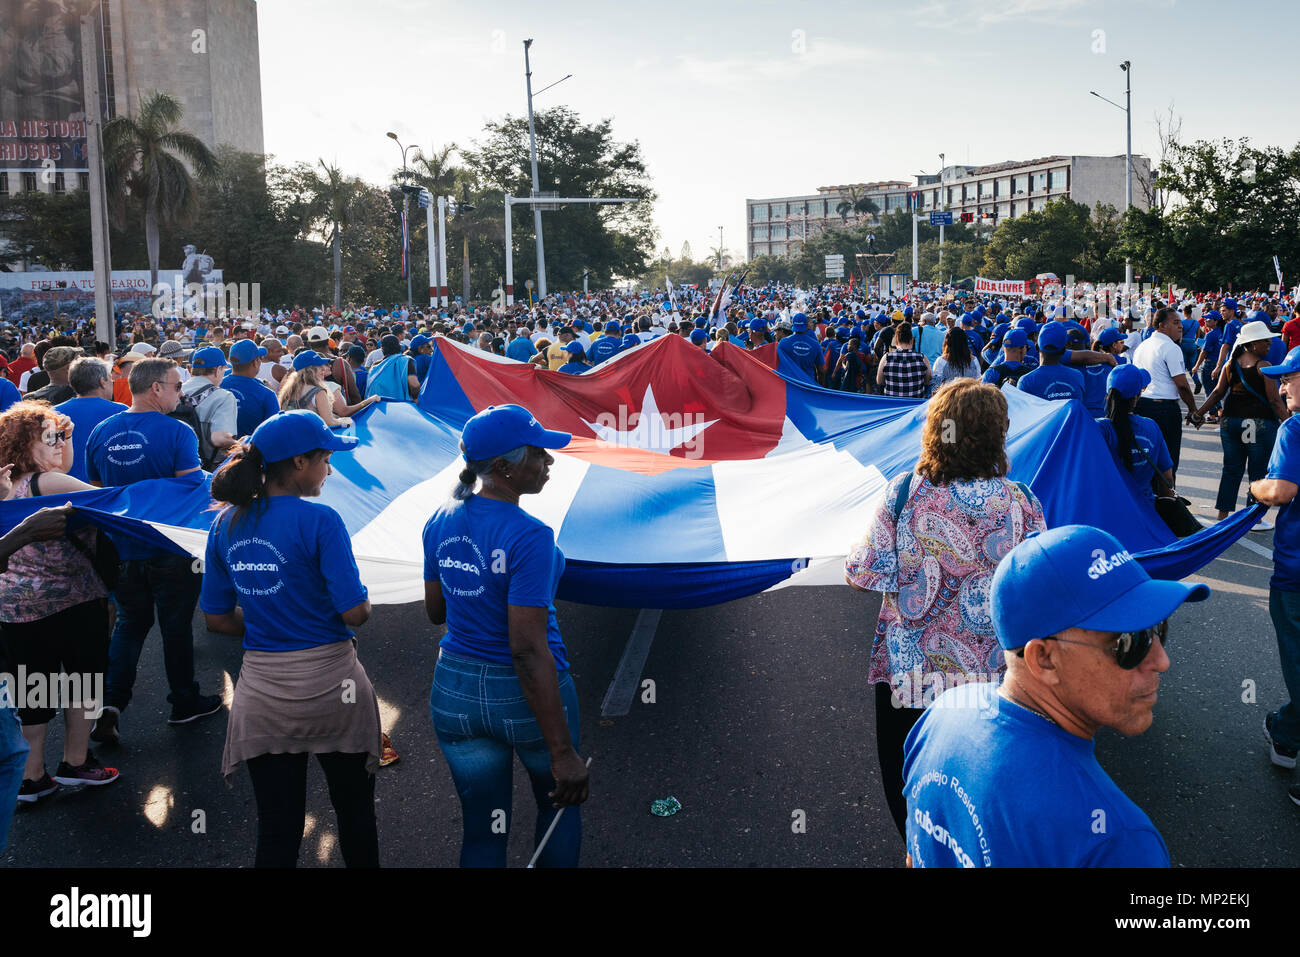 Havana, Cuba. May 1st 2018 Marchers in the International Worker's Day March  marching with the Cuban flag.  Caleb Hughes/Alamy Live News - Stock Image